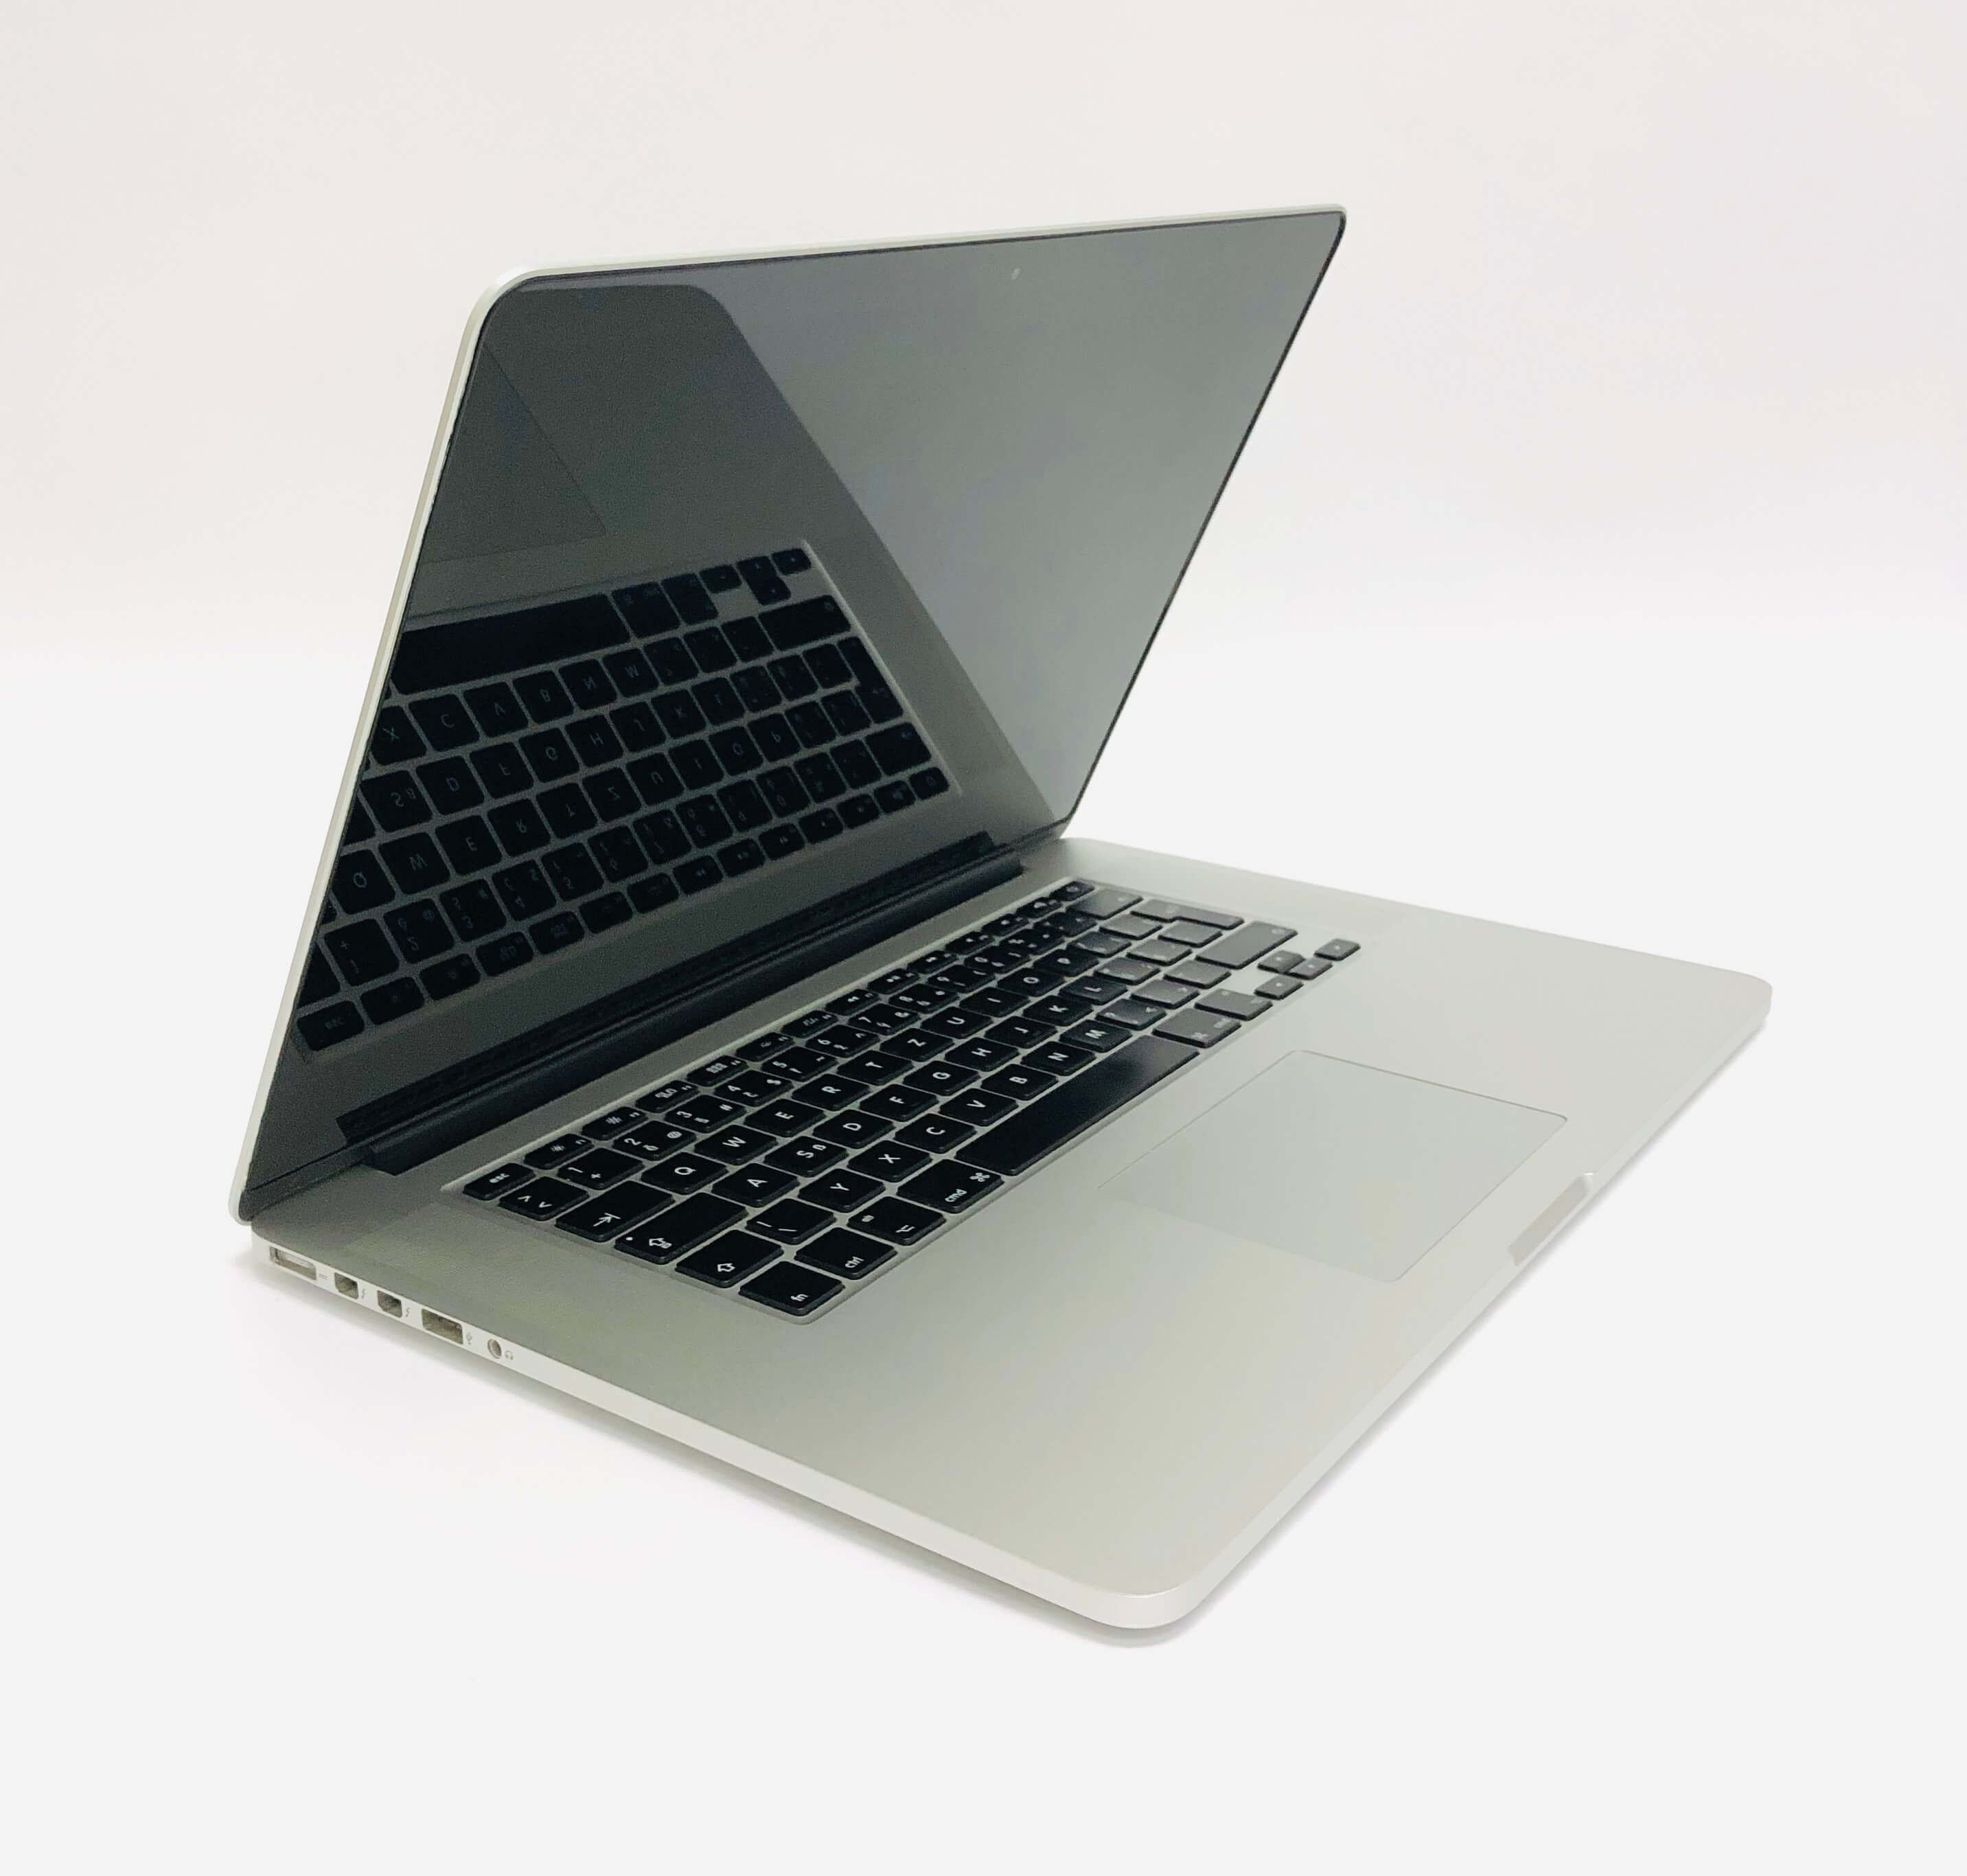 Macbook Pro 15'' Retina, i7, rok 2014, 16GB RAM, 256GB SSD